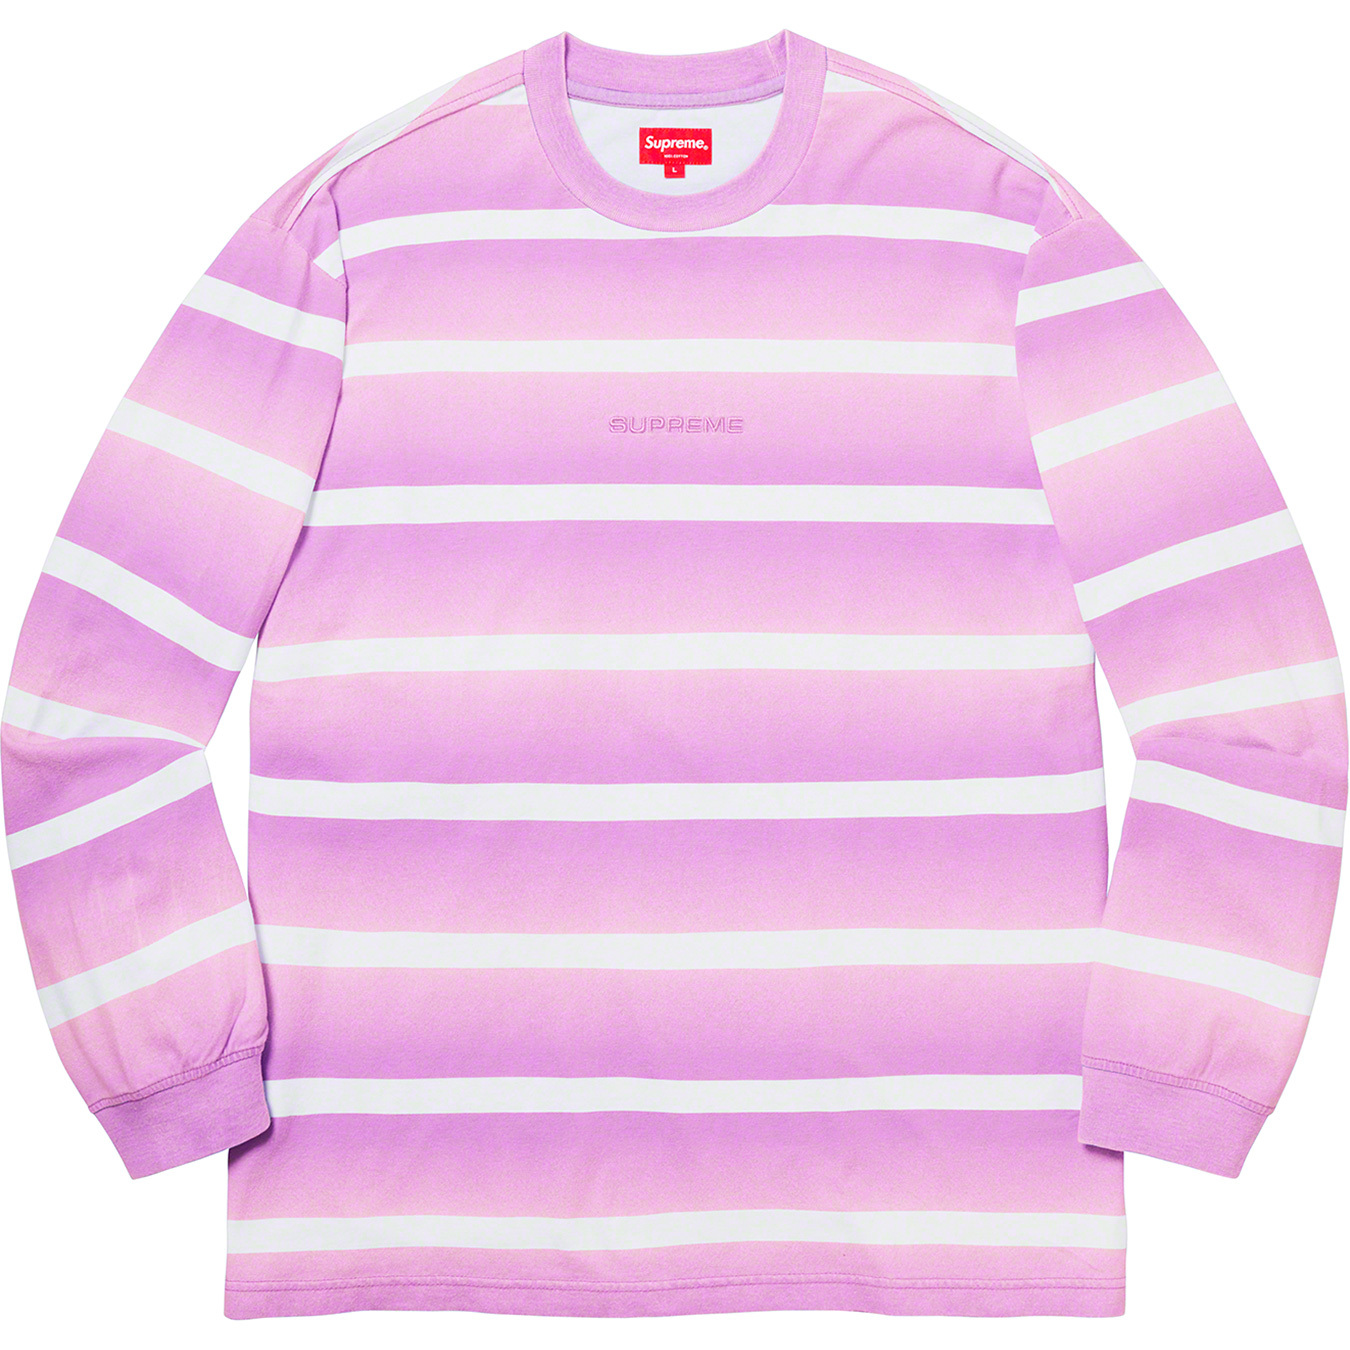 supreme-20ss-spring-summer-fade-stripe-l-s-top